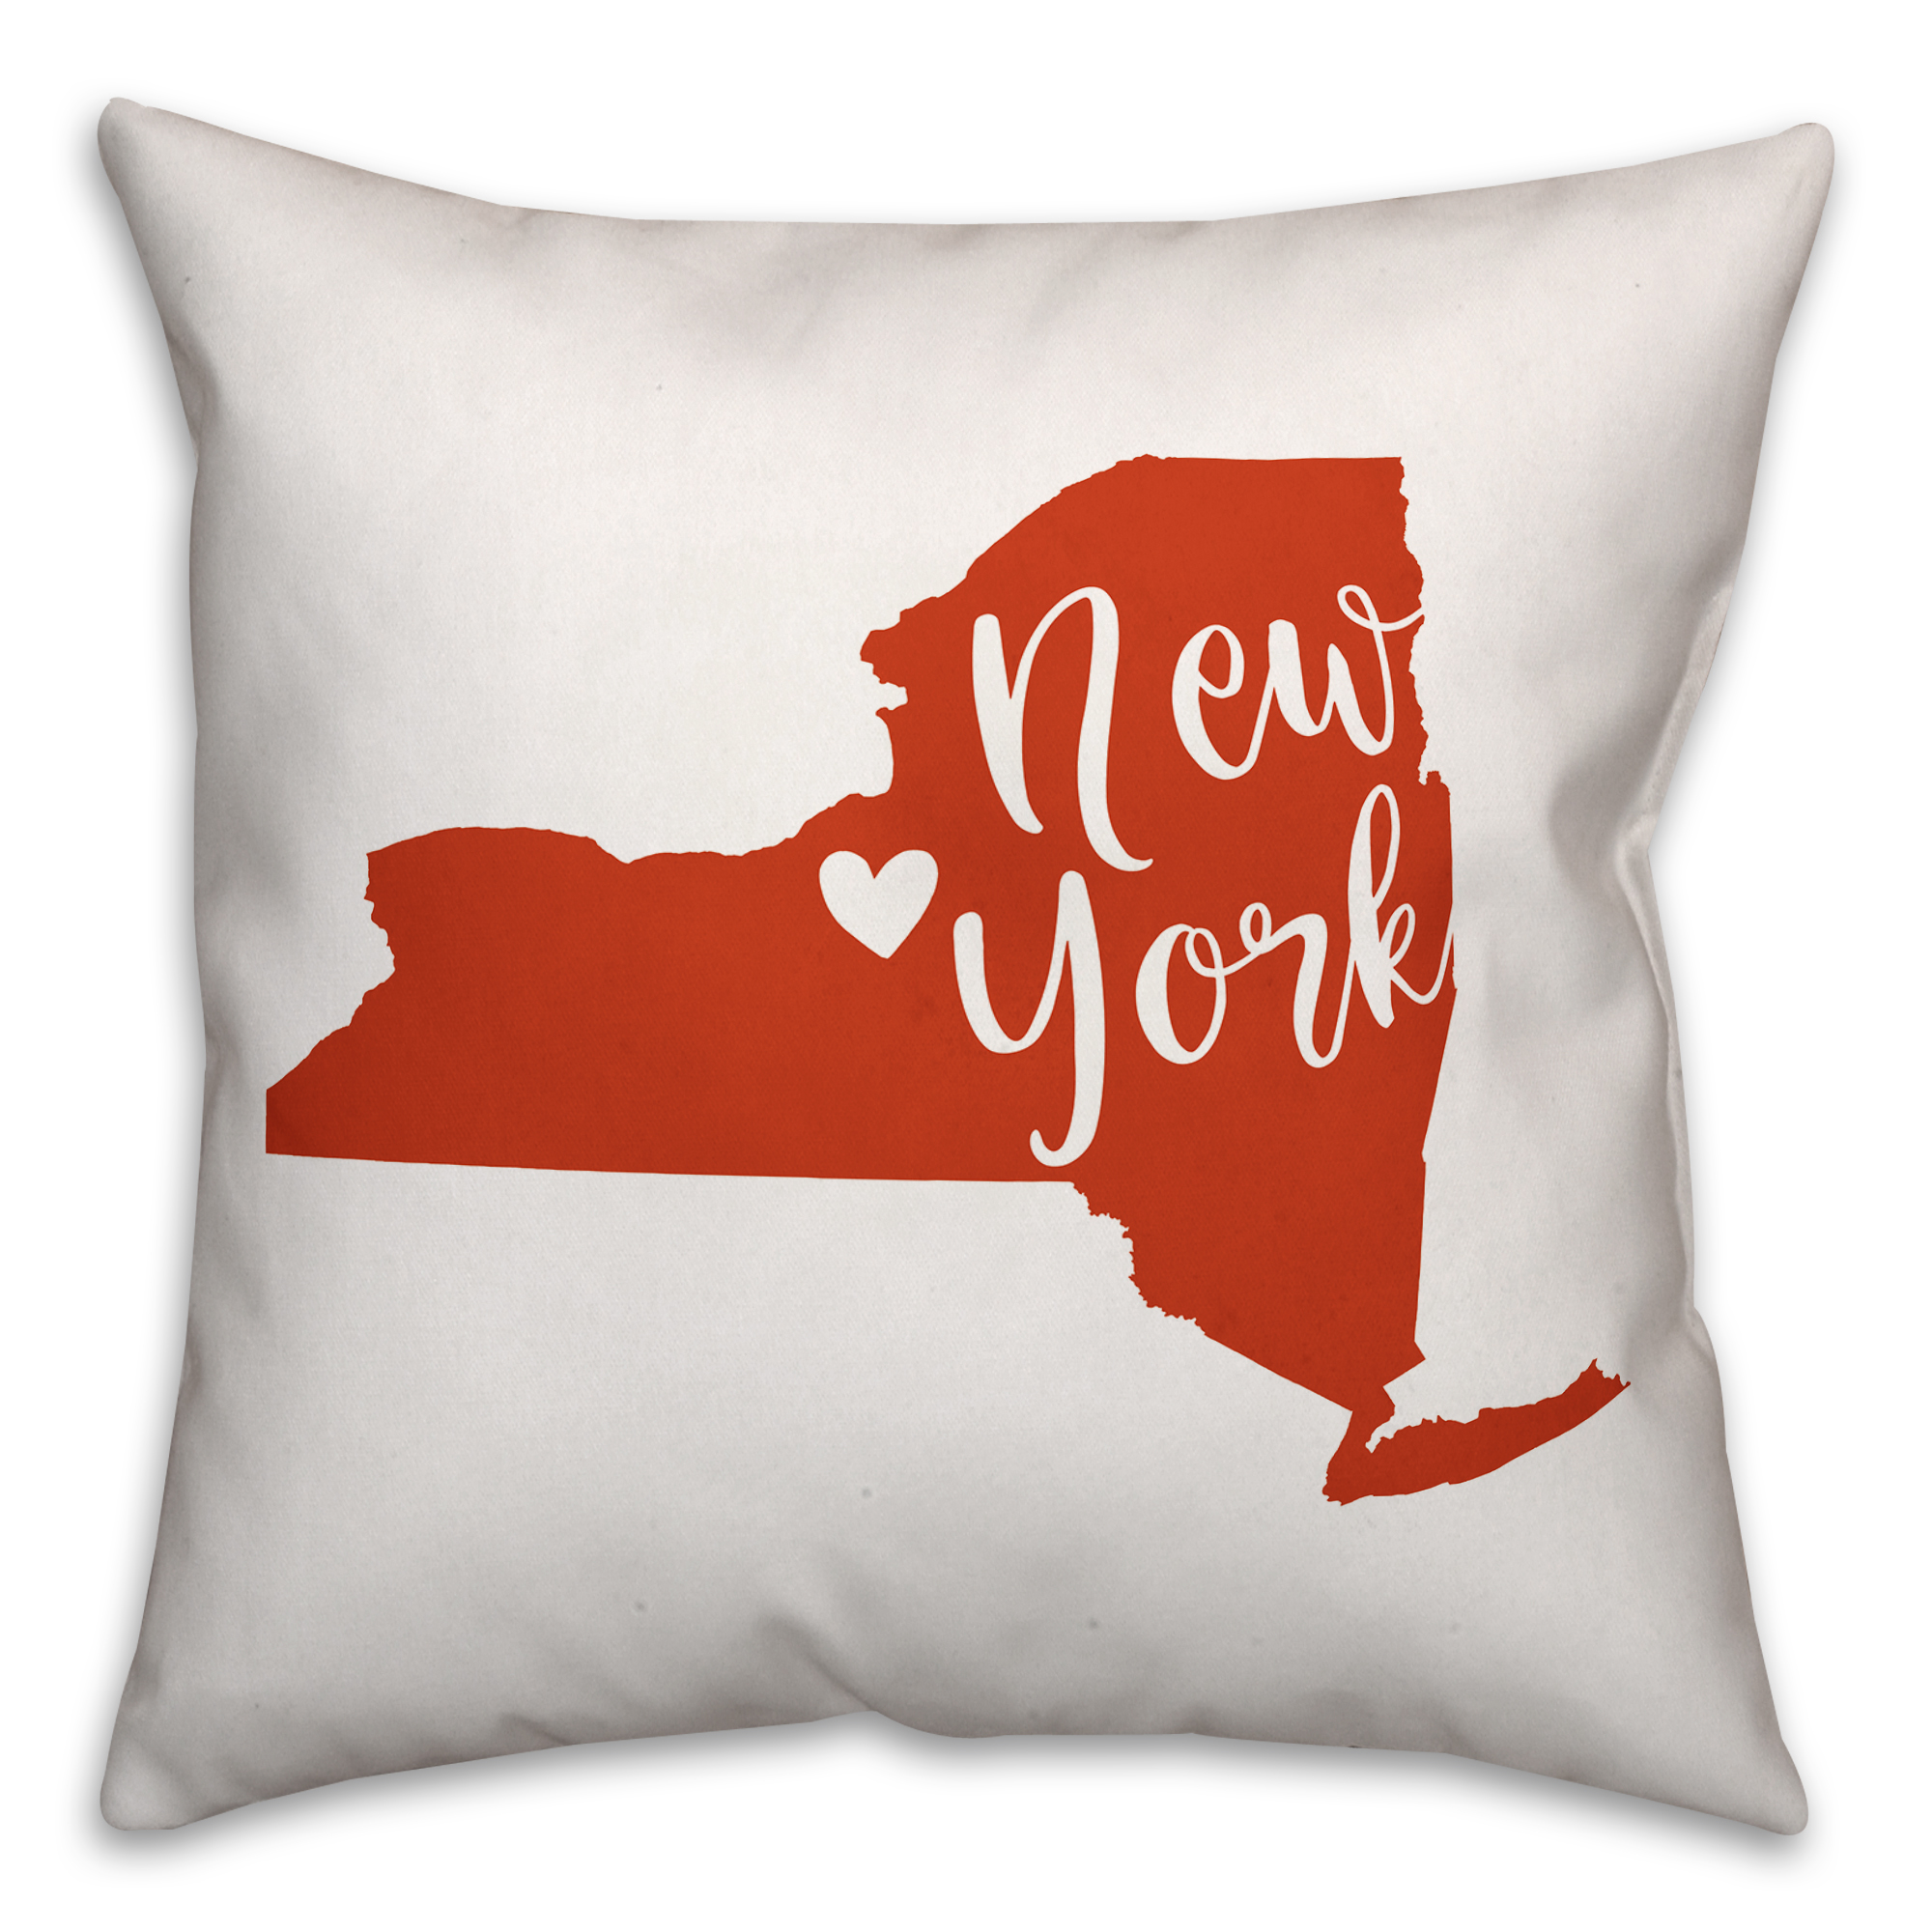 Orange and White New York Pride 16x16 Spun Poly Pillow